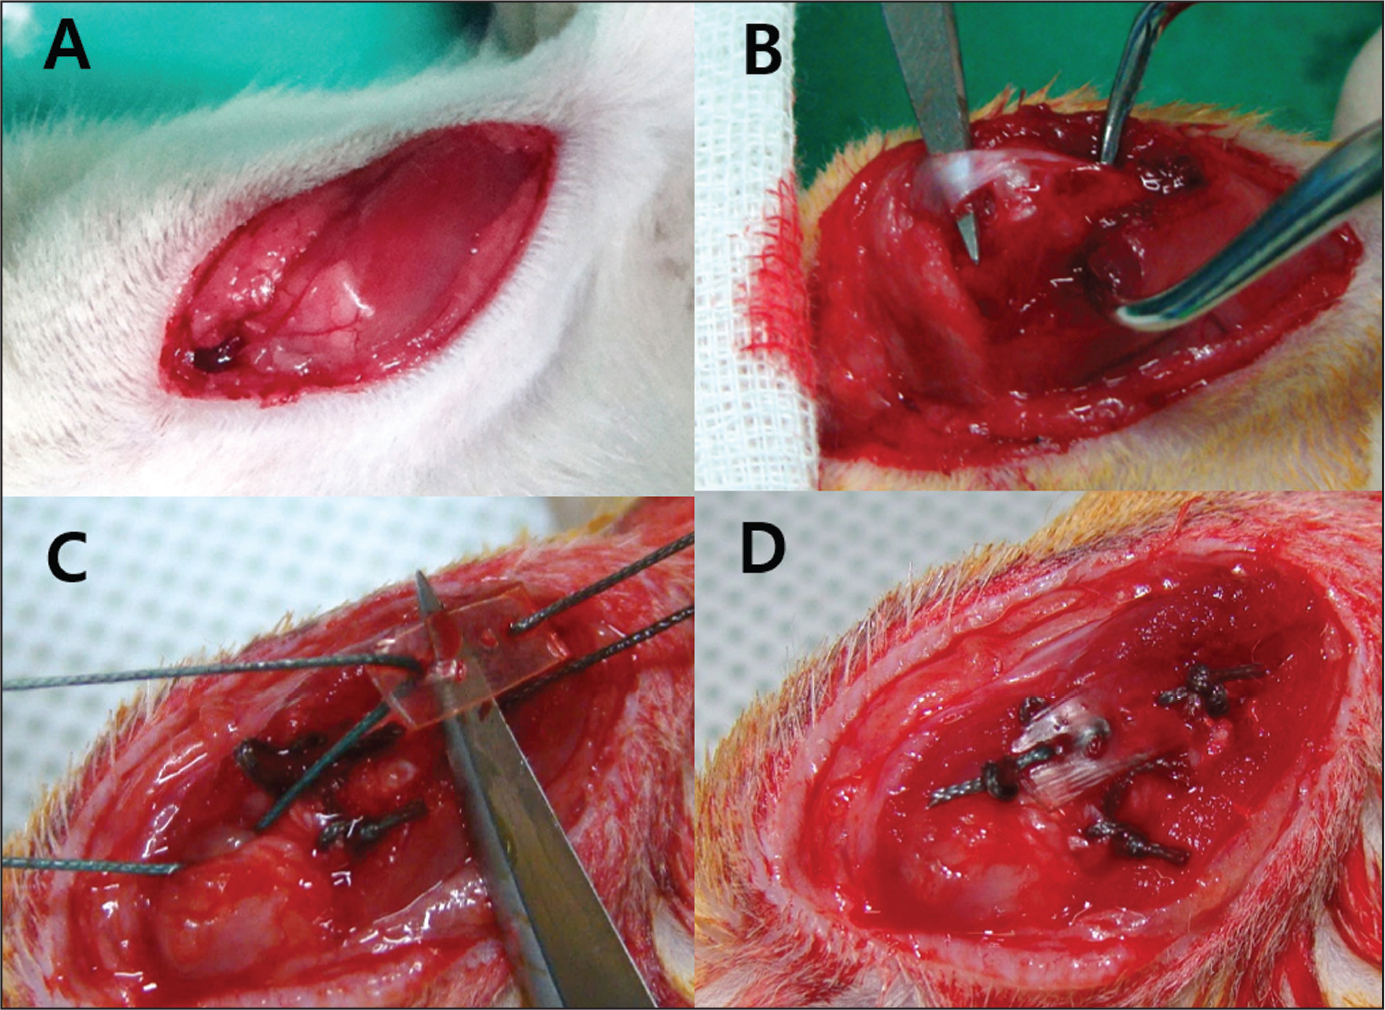 After rotator cuff repair, the control group was subjected exclusively to repair (A, B). In the experimental group, an alginate sheet was placed on the detached tendon (C) and repaired simultaneously (D).